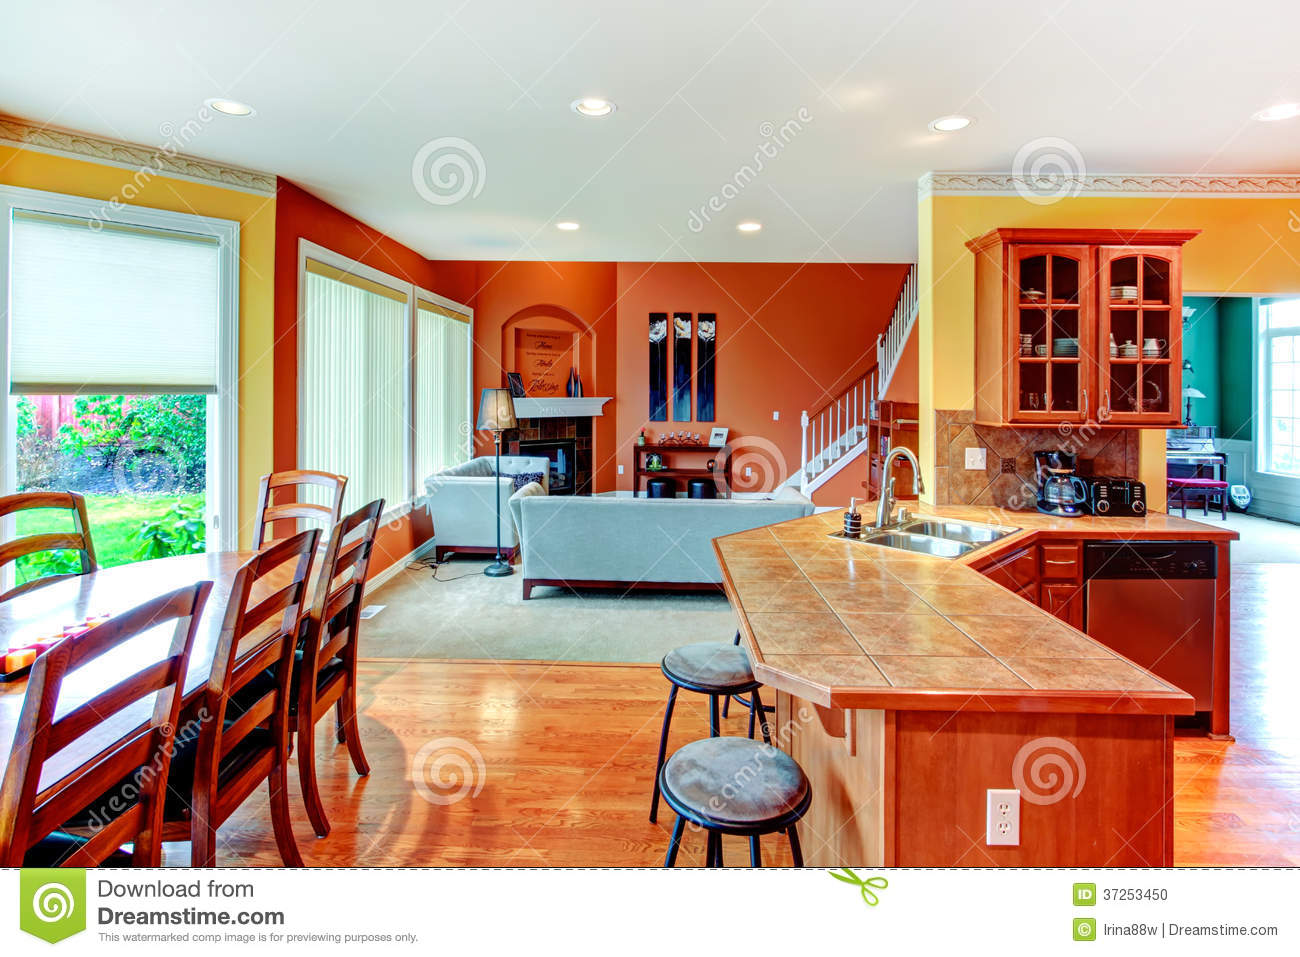 Interior design great kitchen dining and living room for Interior design for 10x10 living room